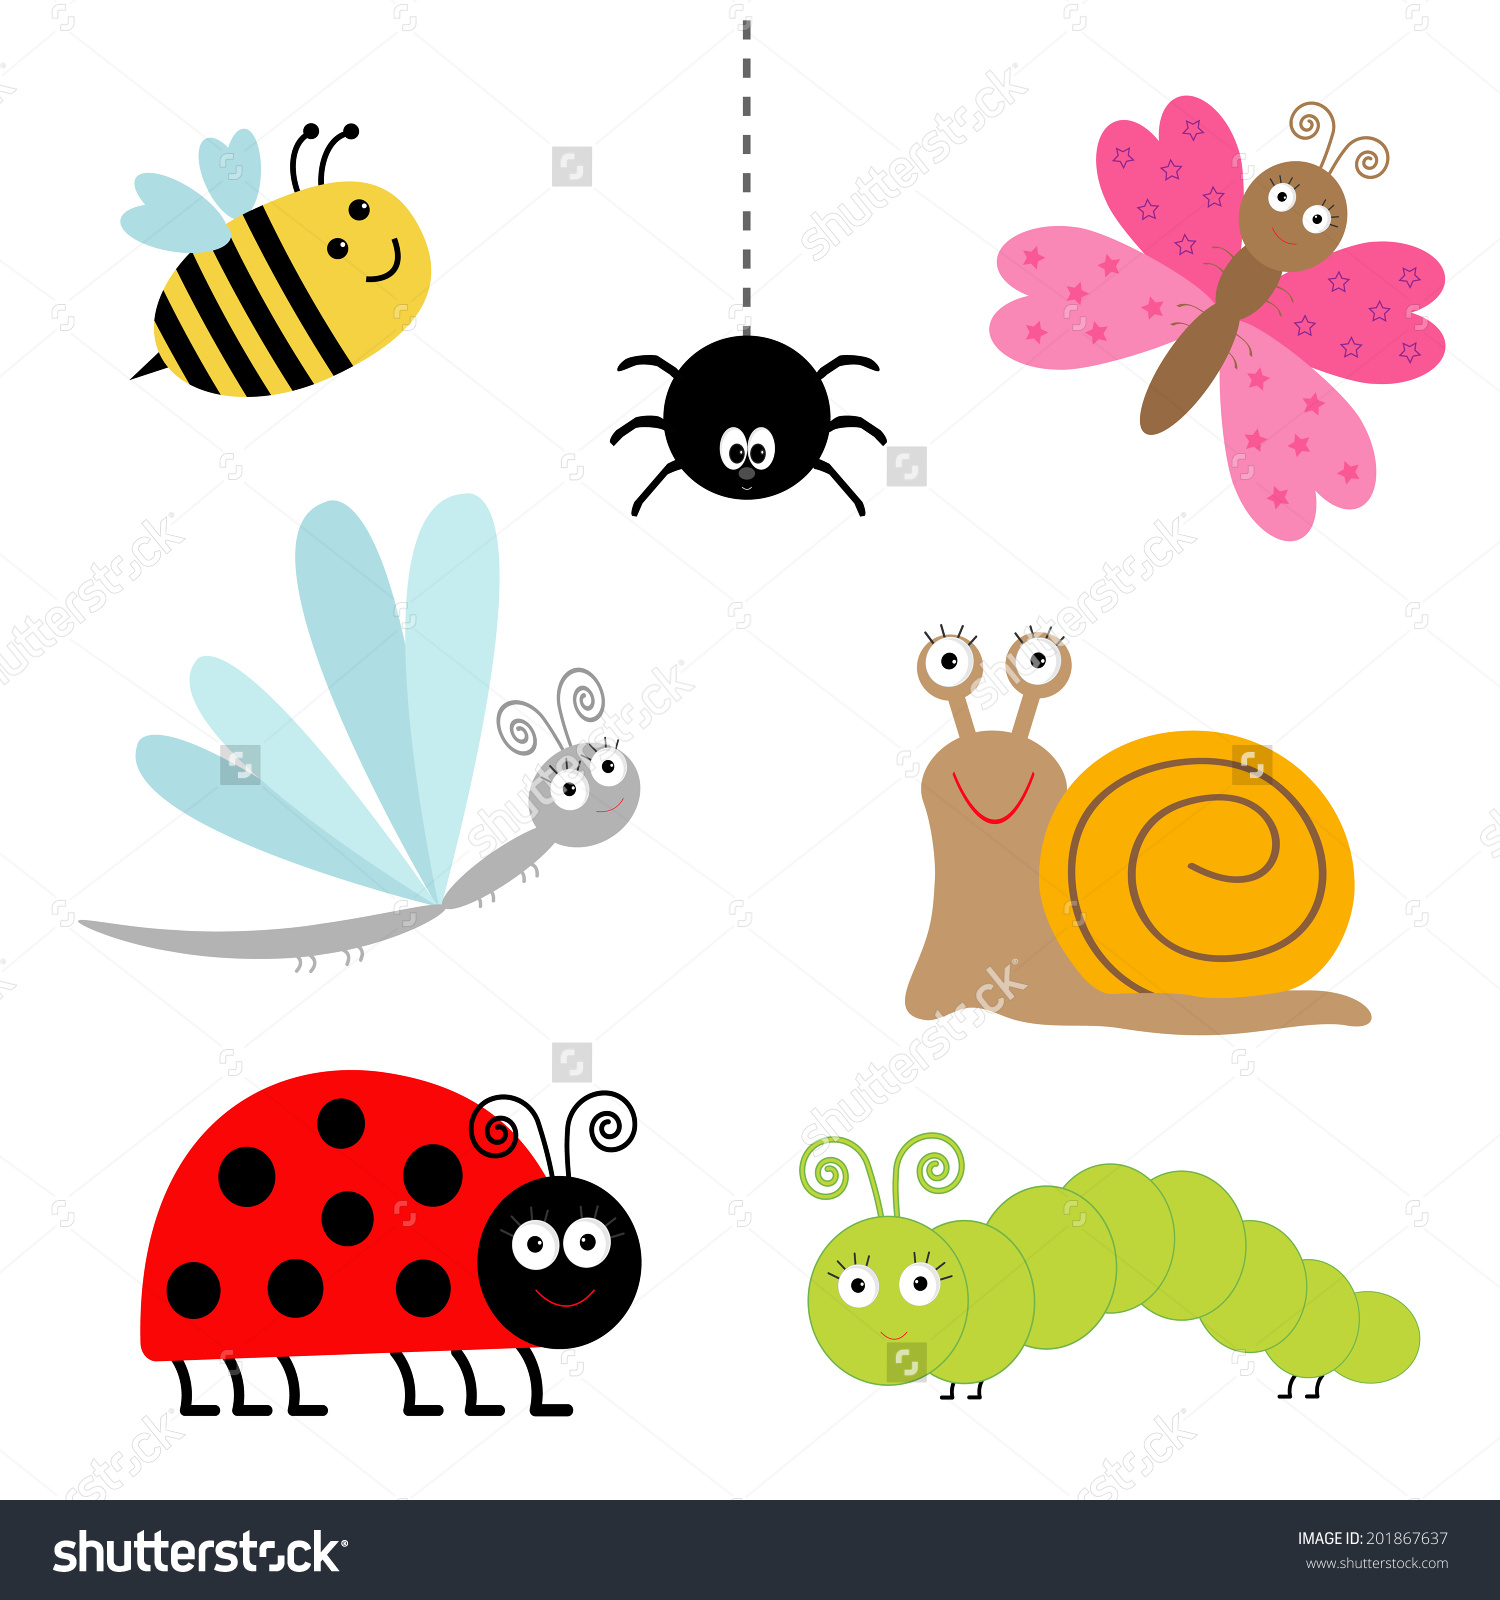 Cute spiders and insect clipart.